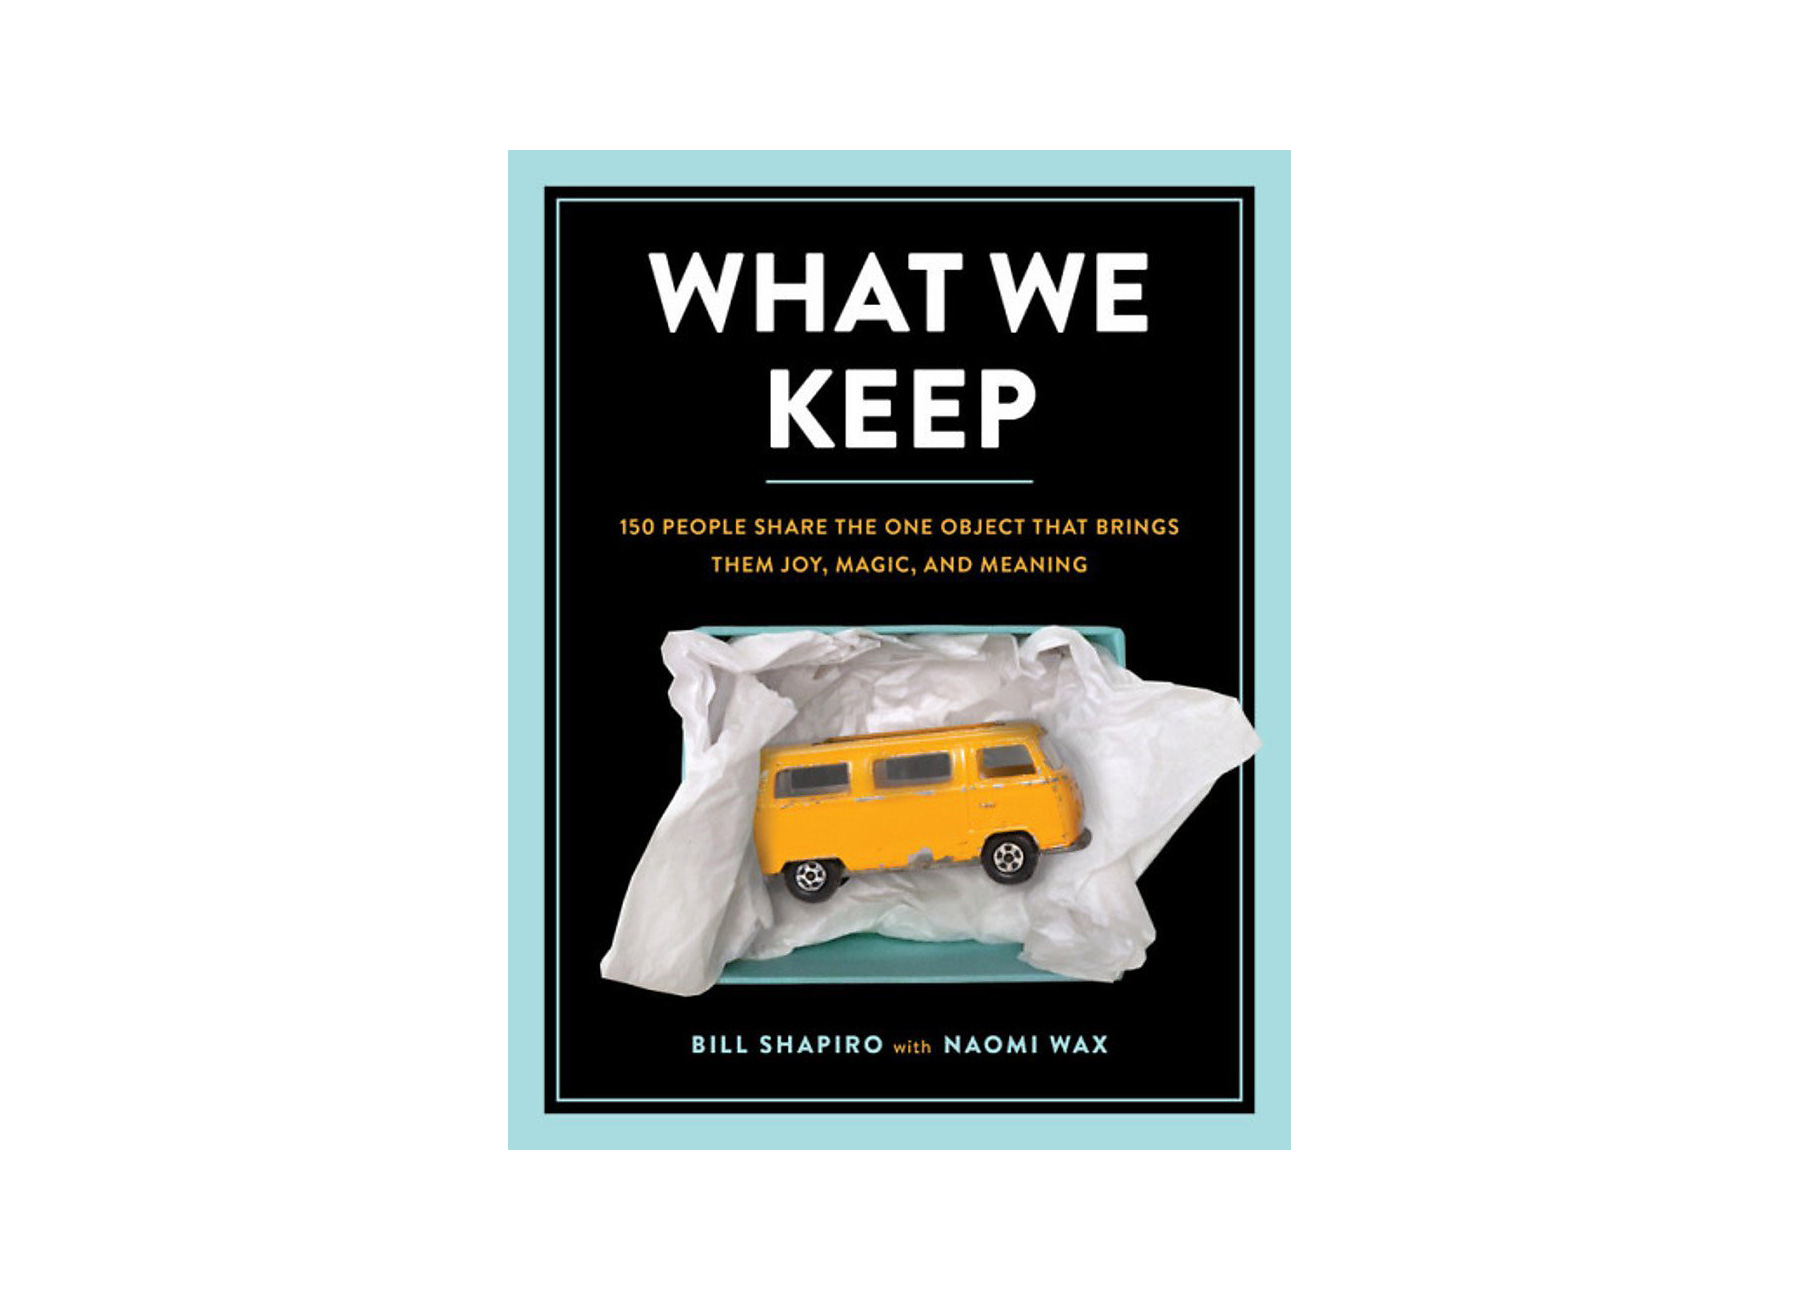 What We Keep, by Bill Shapiro